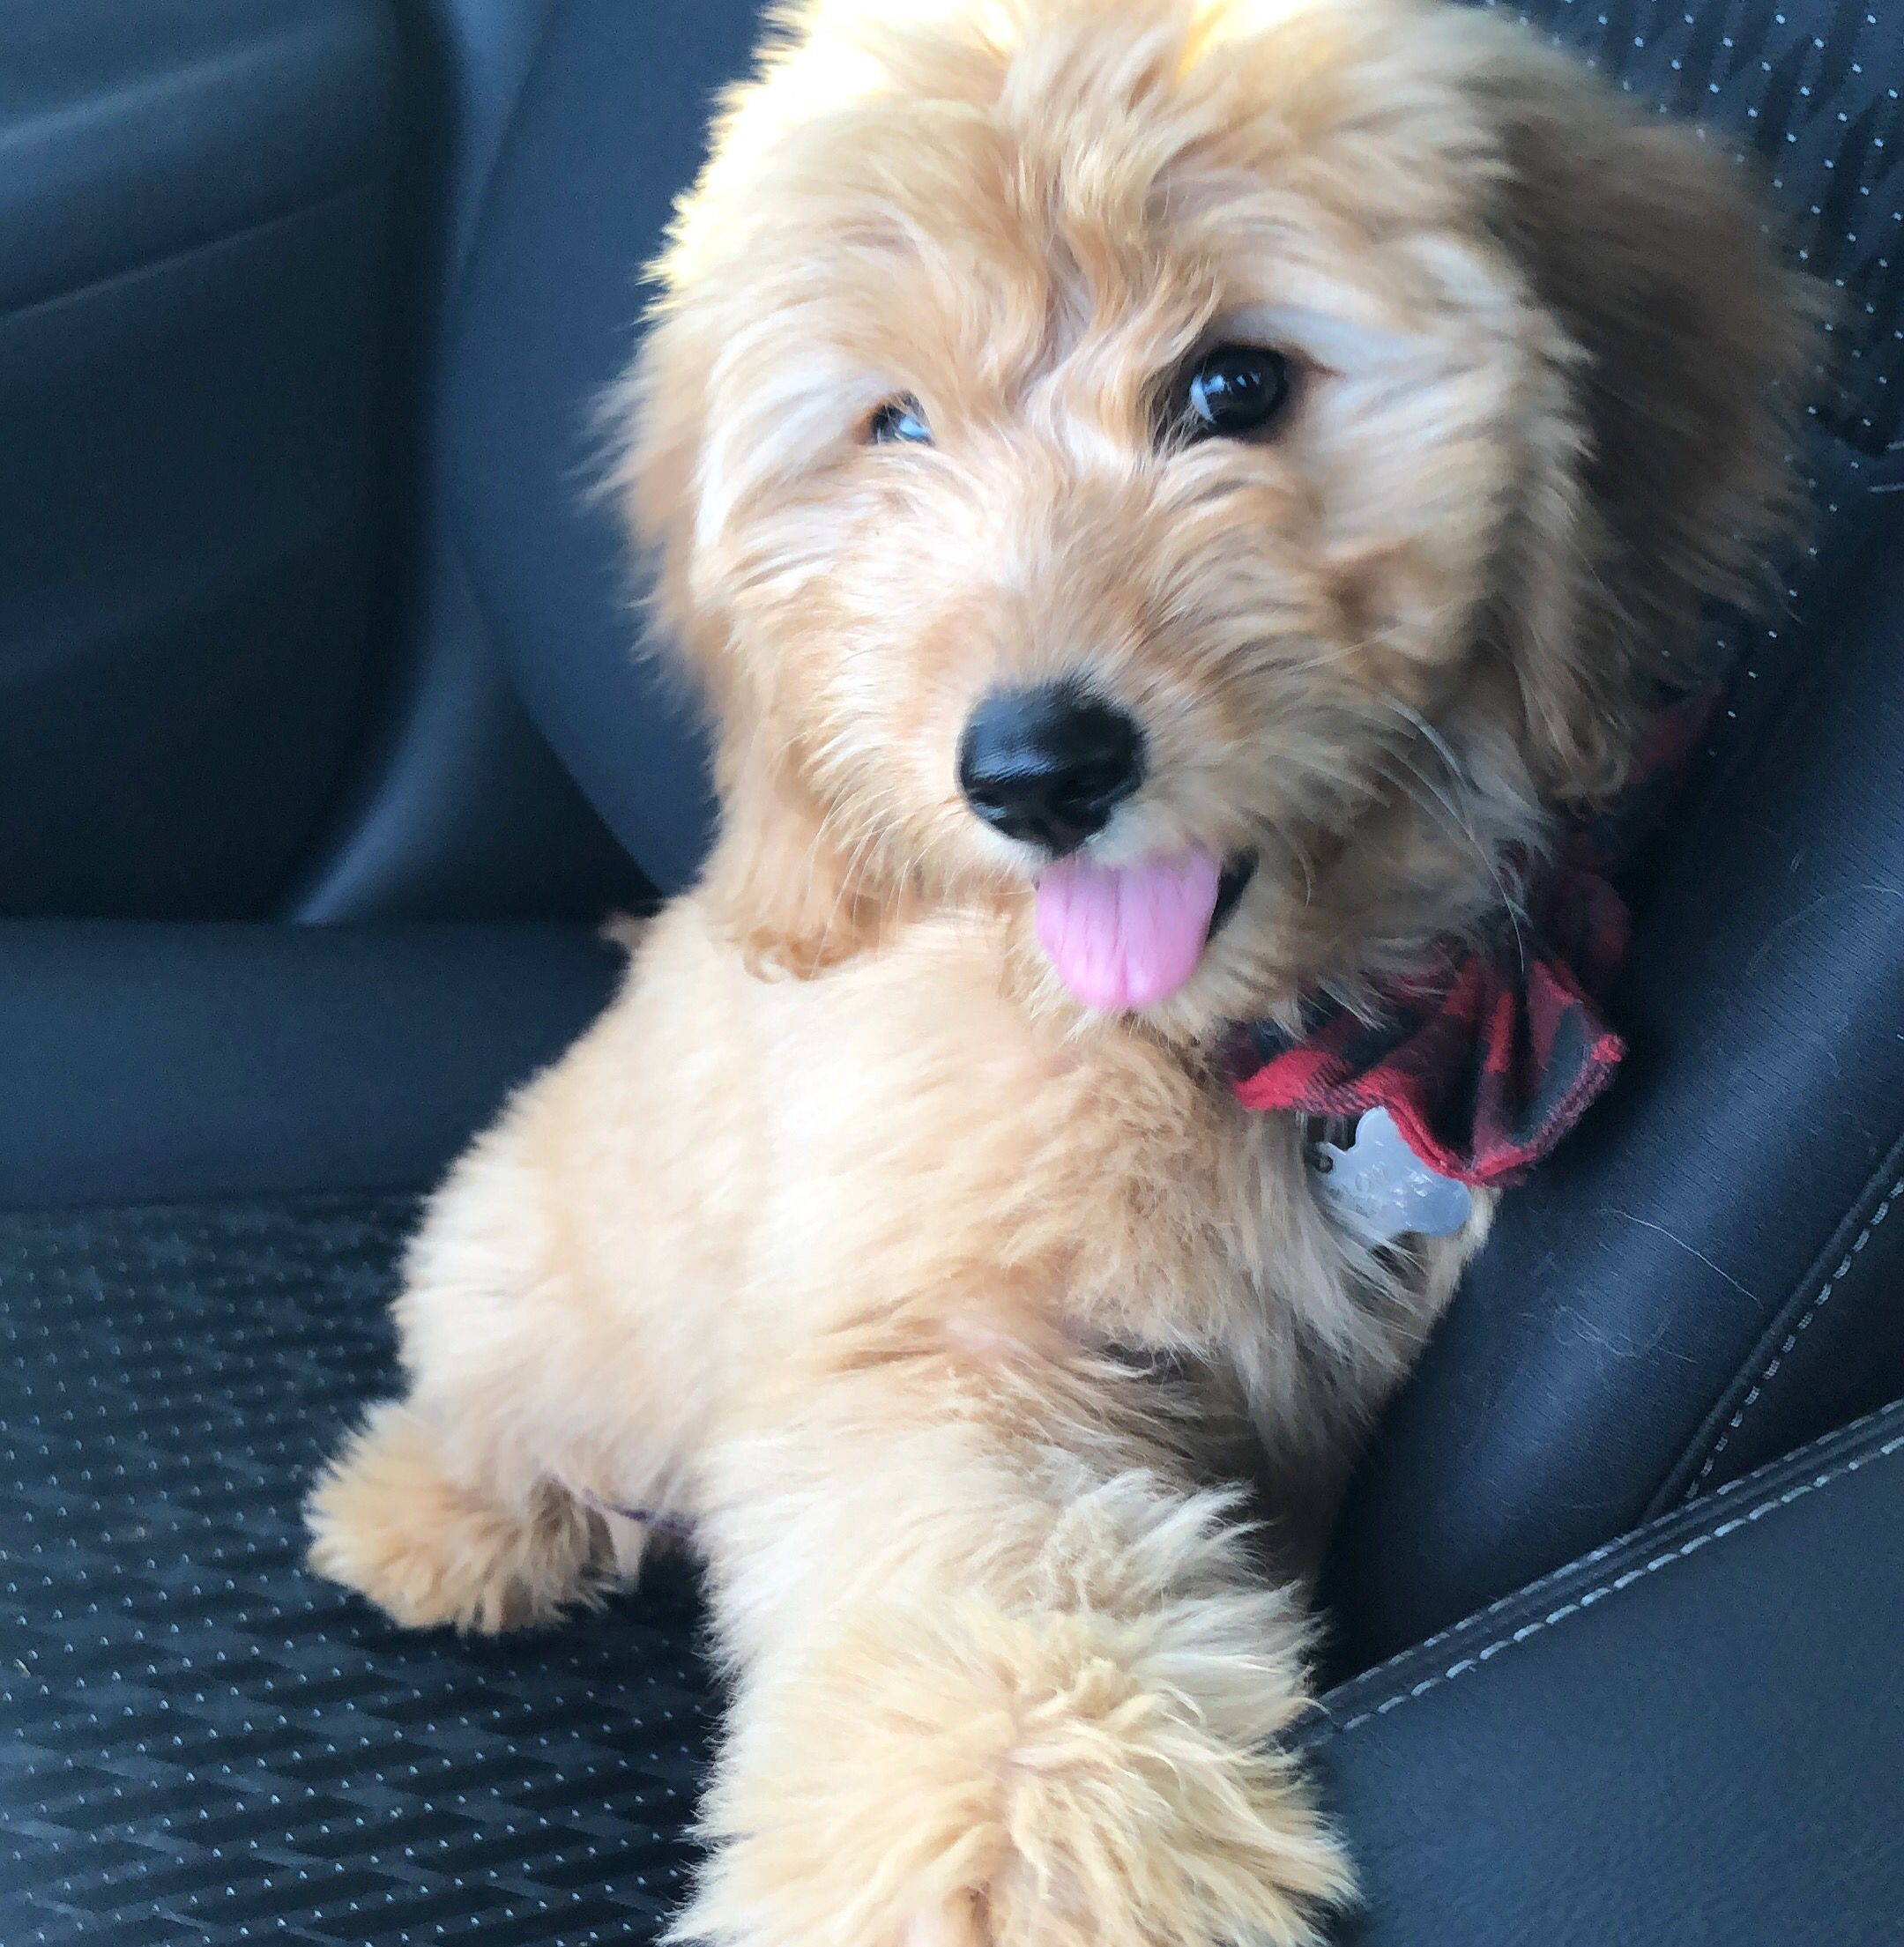 12 Week Old Harlow Her Mom Is A Golden Retriever And Her Dad